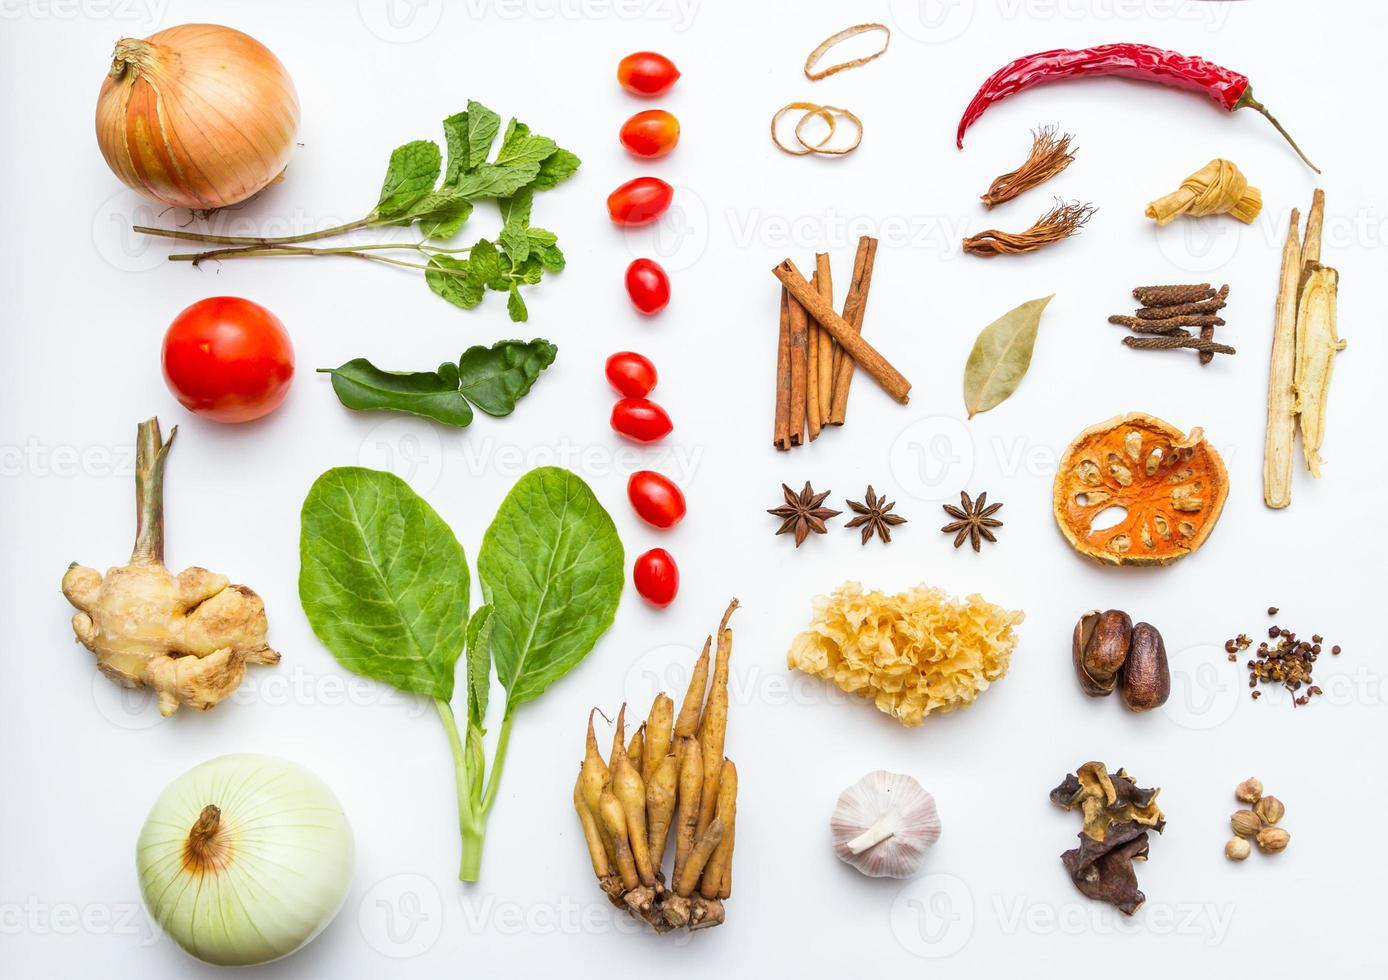 Fresh vegetables and other healthy foods on white background. photo